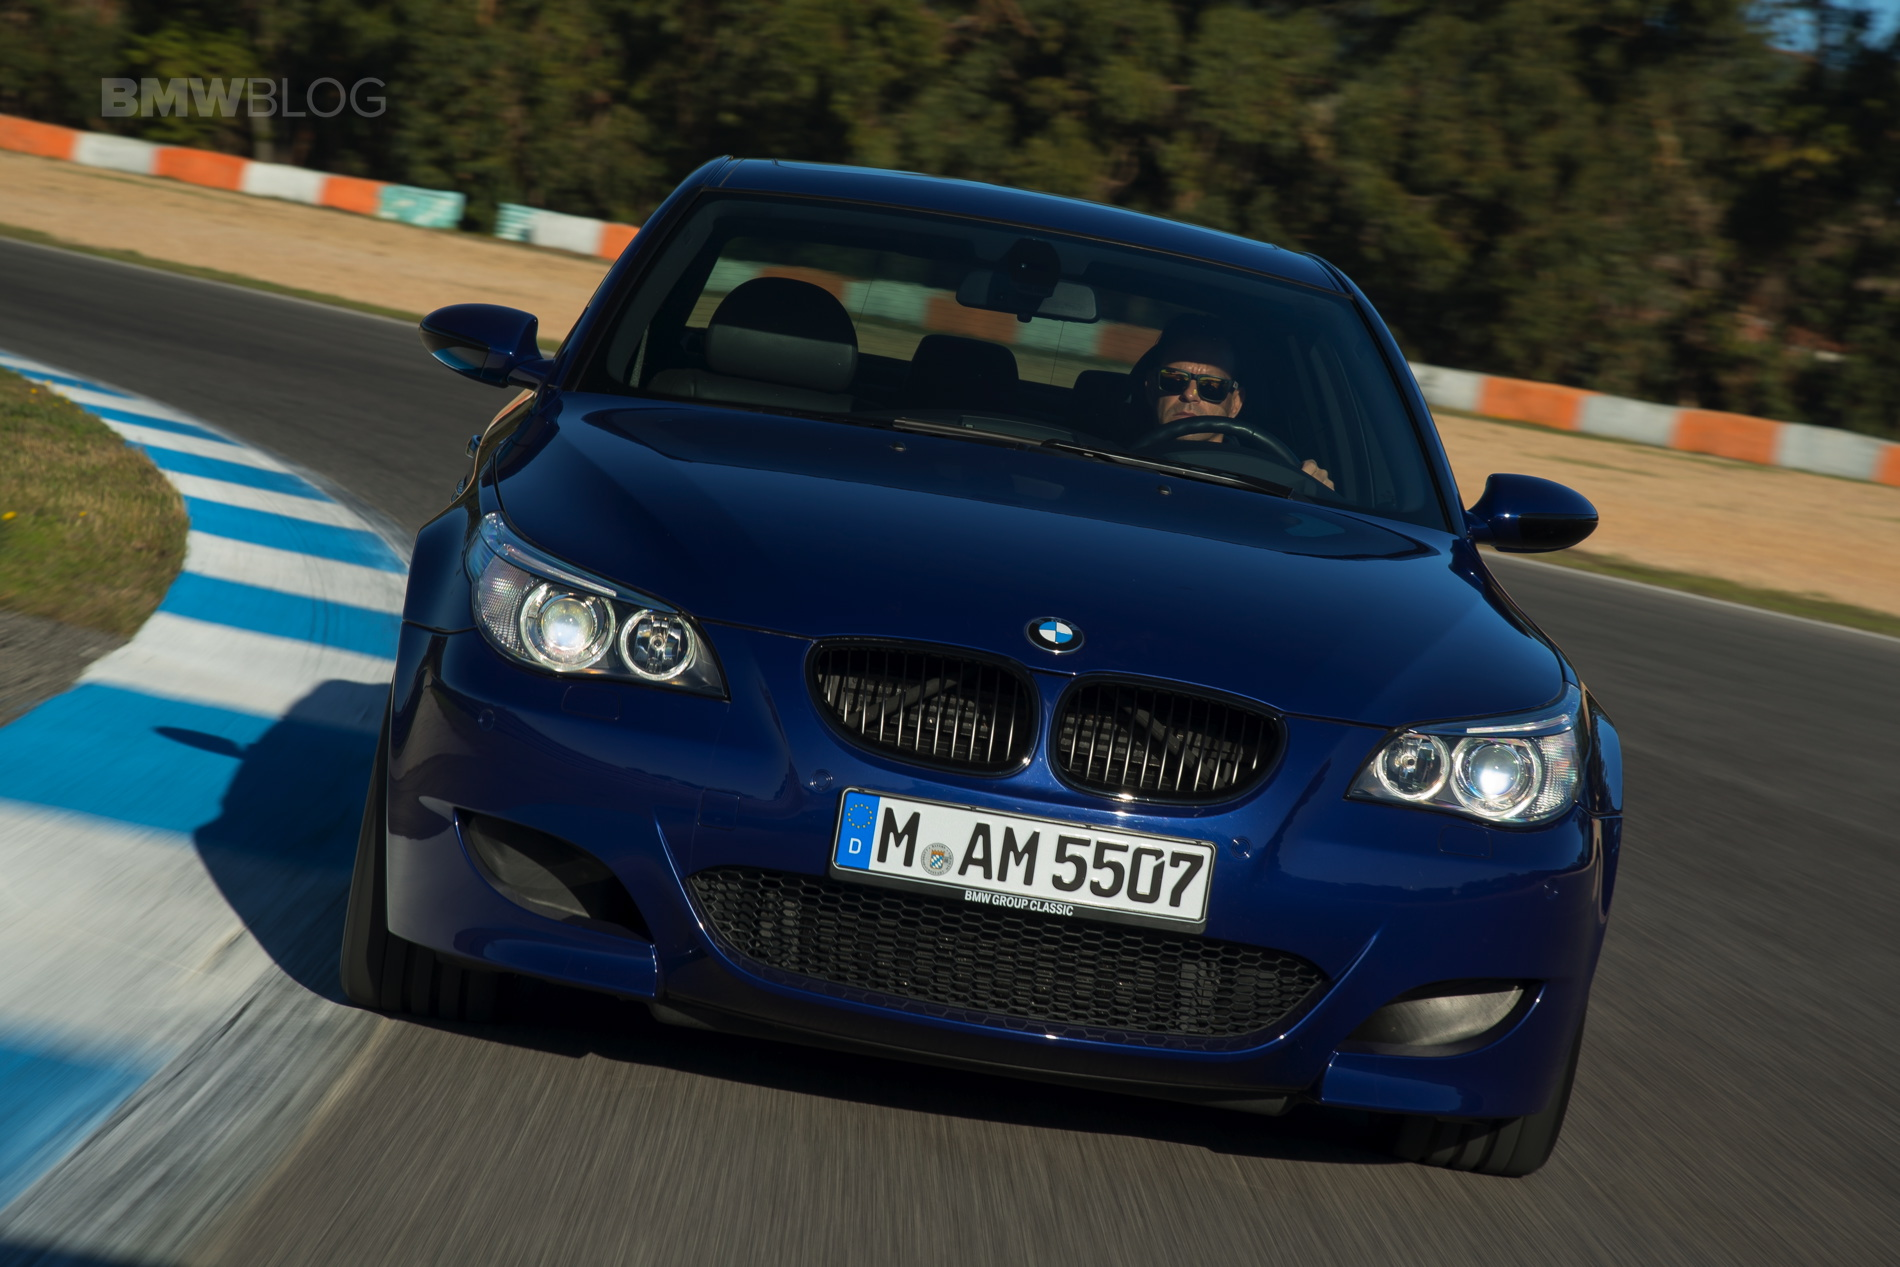 Photoshoot With The Bmw E60 M5